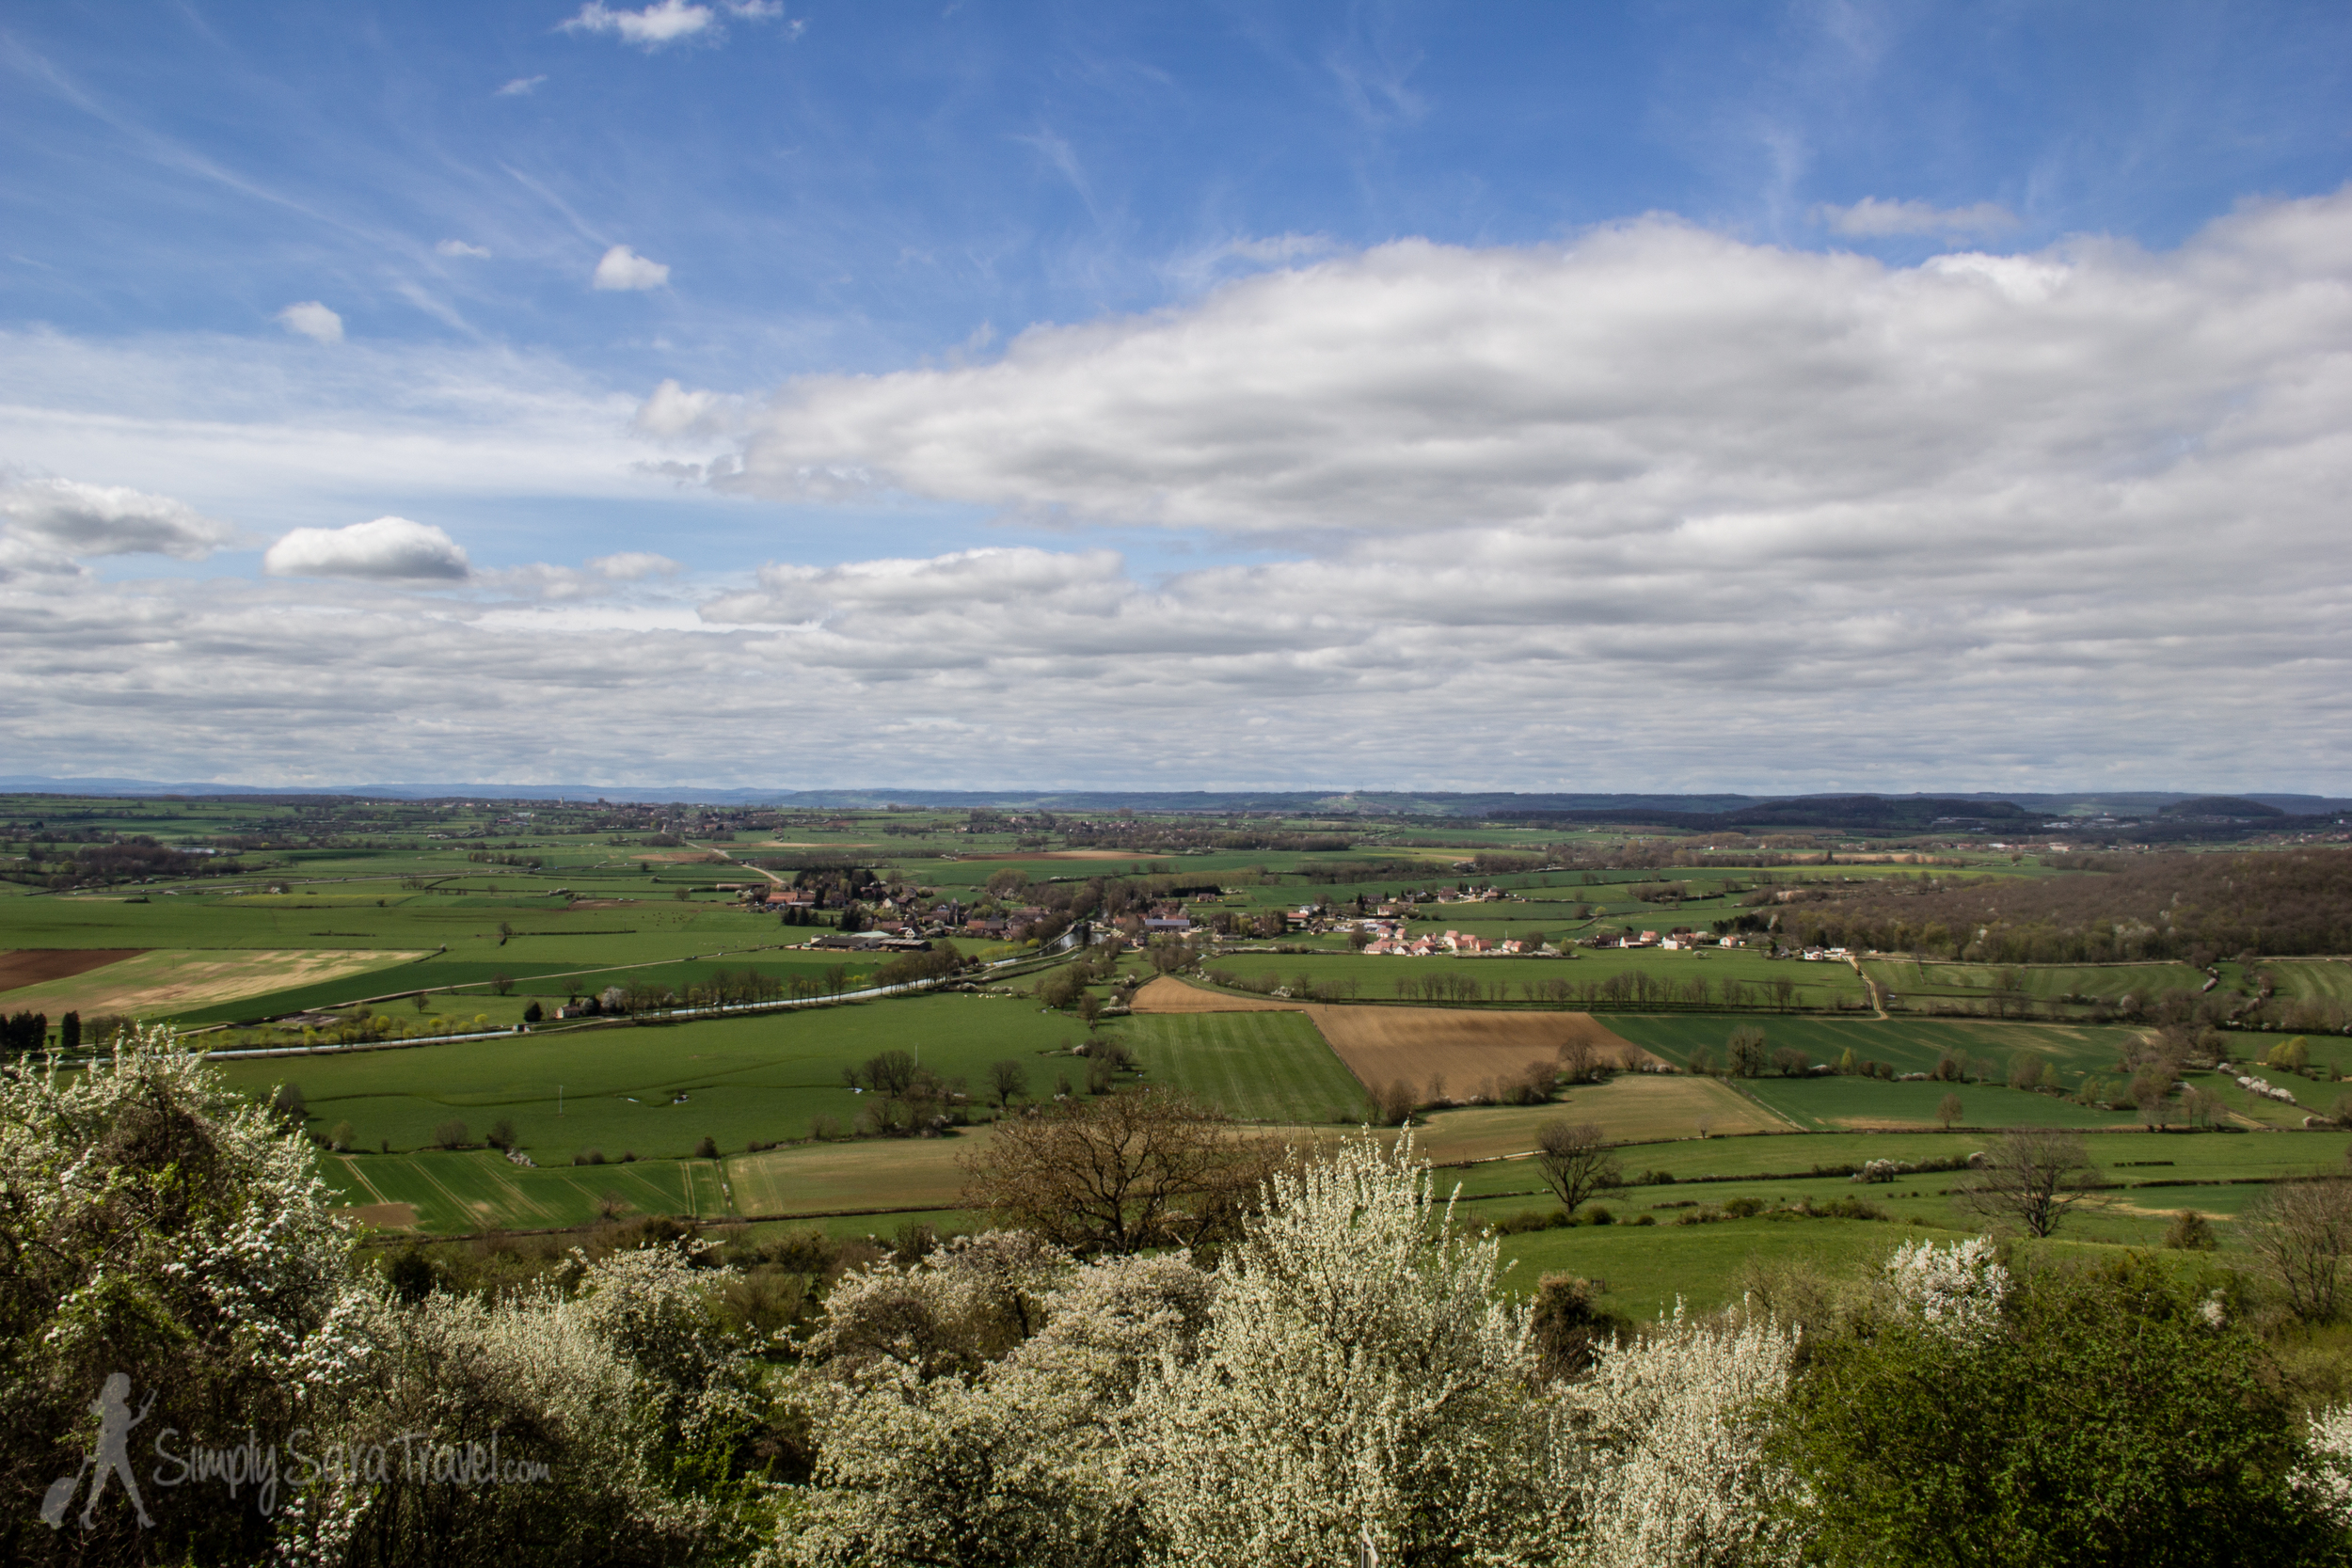 We took a look at the view of the countryside before making our way to thechâteau